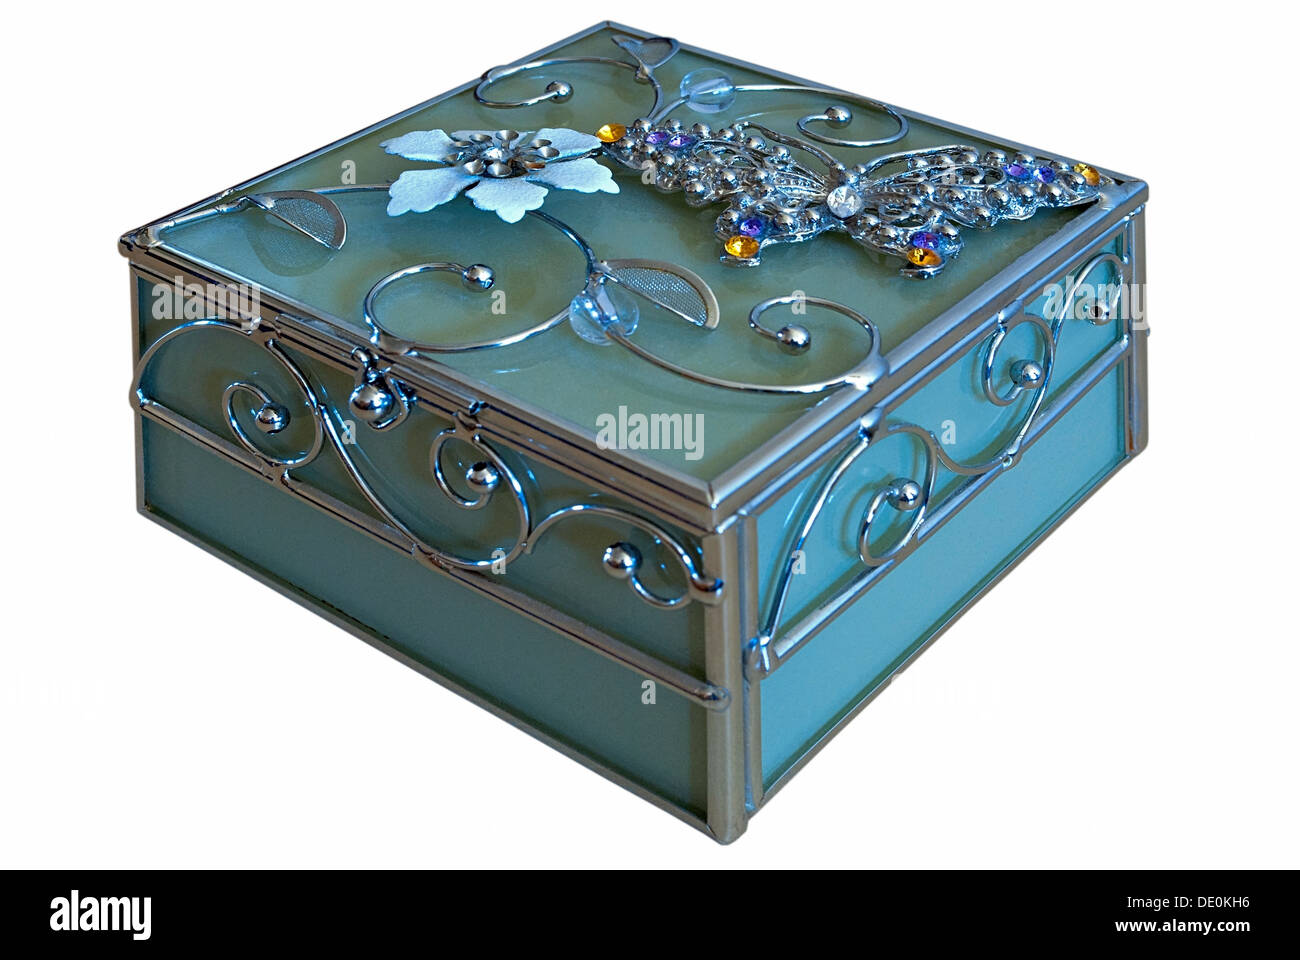 Casket of blue glass with a pattern in the form of a flower, isolated on white background. - Stock Image